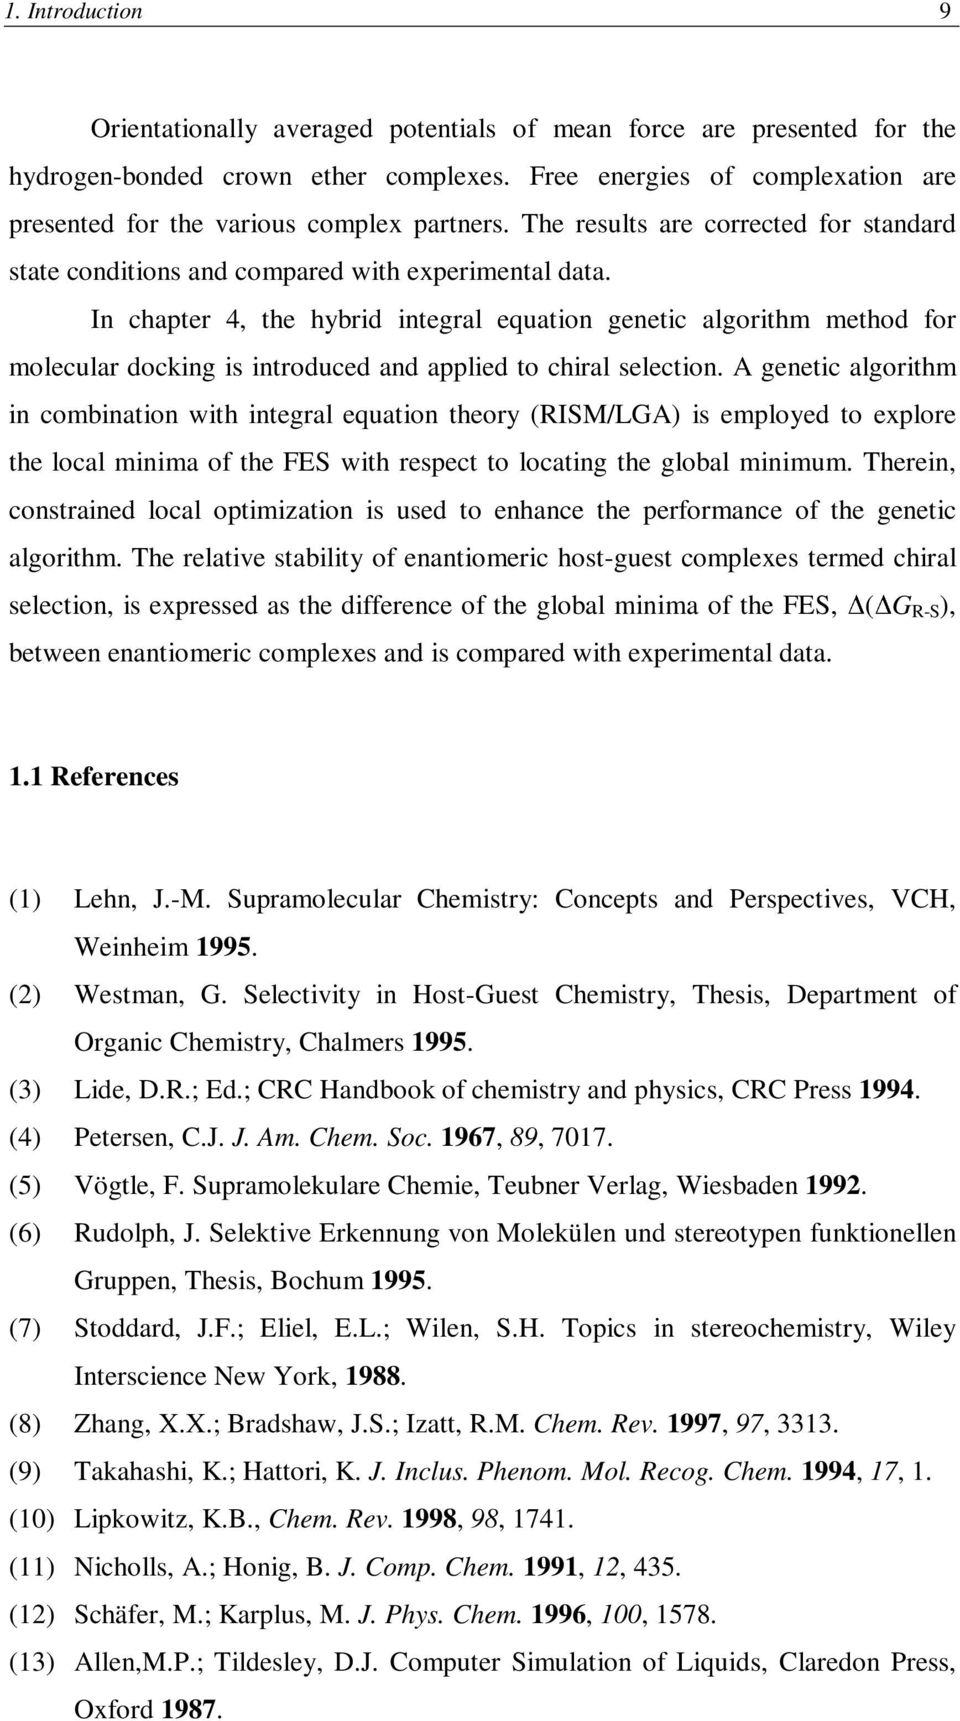 In chapter 4, the hybrid integral equation genetic algorithm method for molecular docking is introduced and applied to chiral selection.